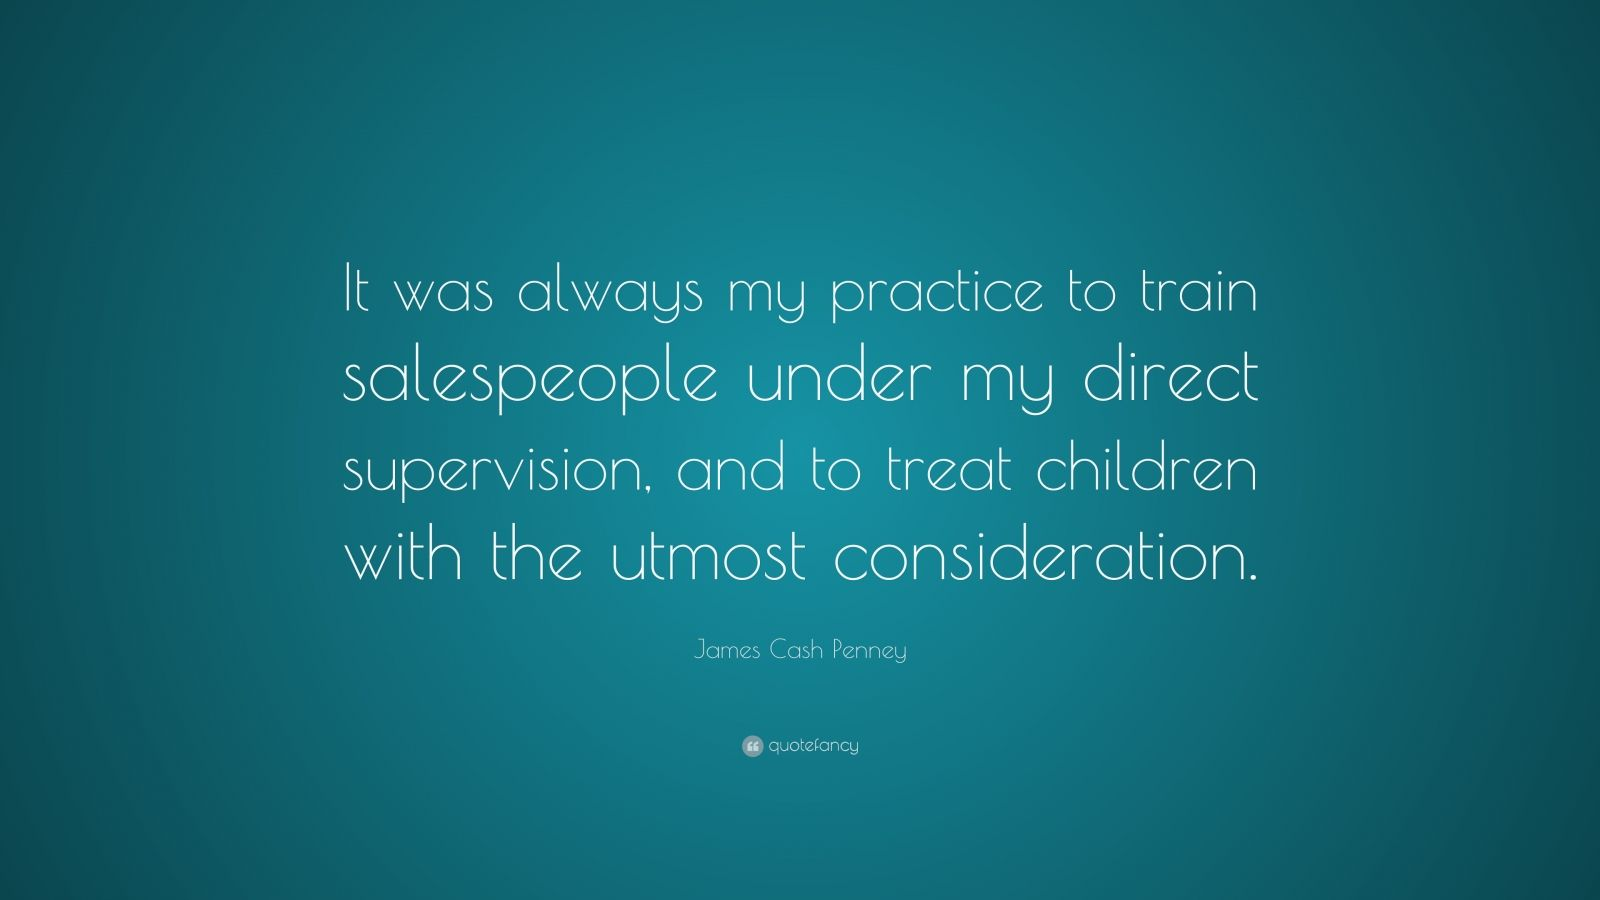 """James Cash Penney Quote: """"It was always my practice to train salespeople under my direct supervision, and to treat children with the utmost consideration."""""""